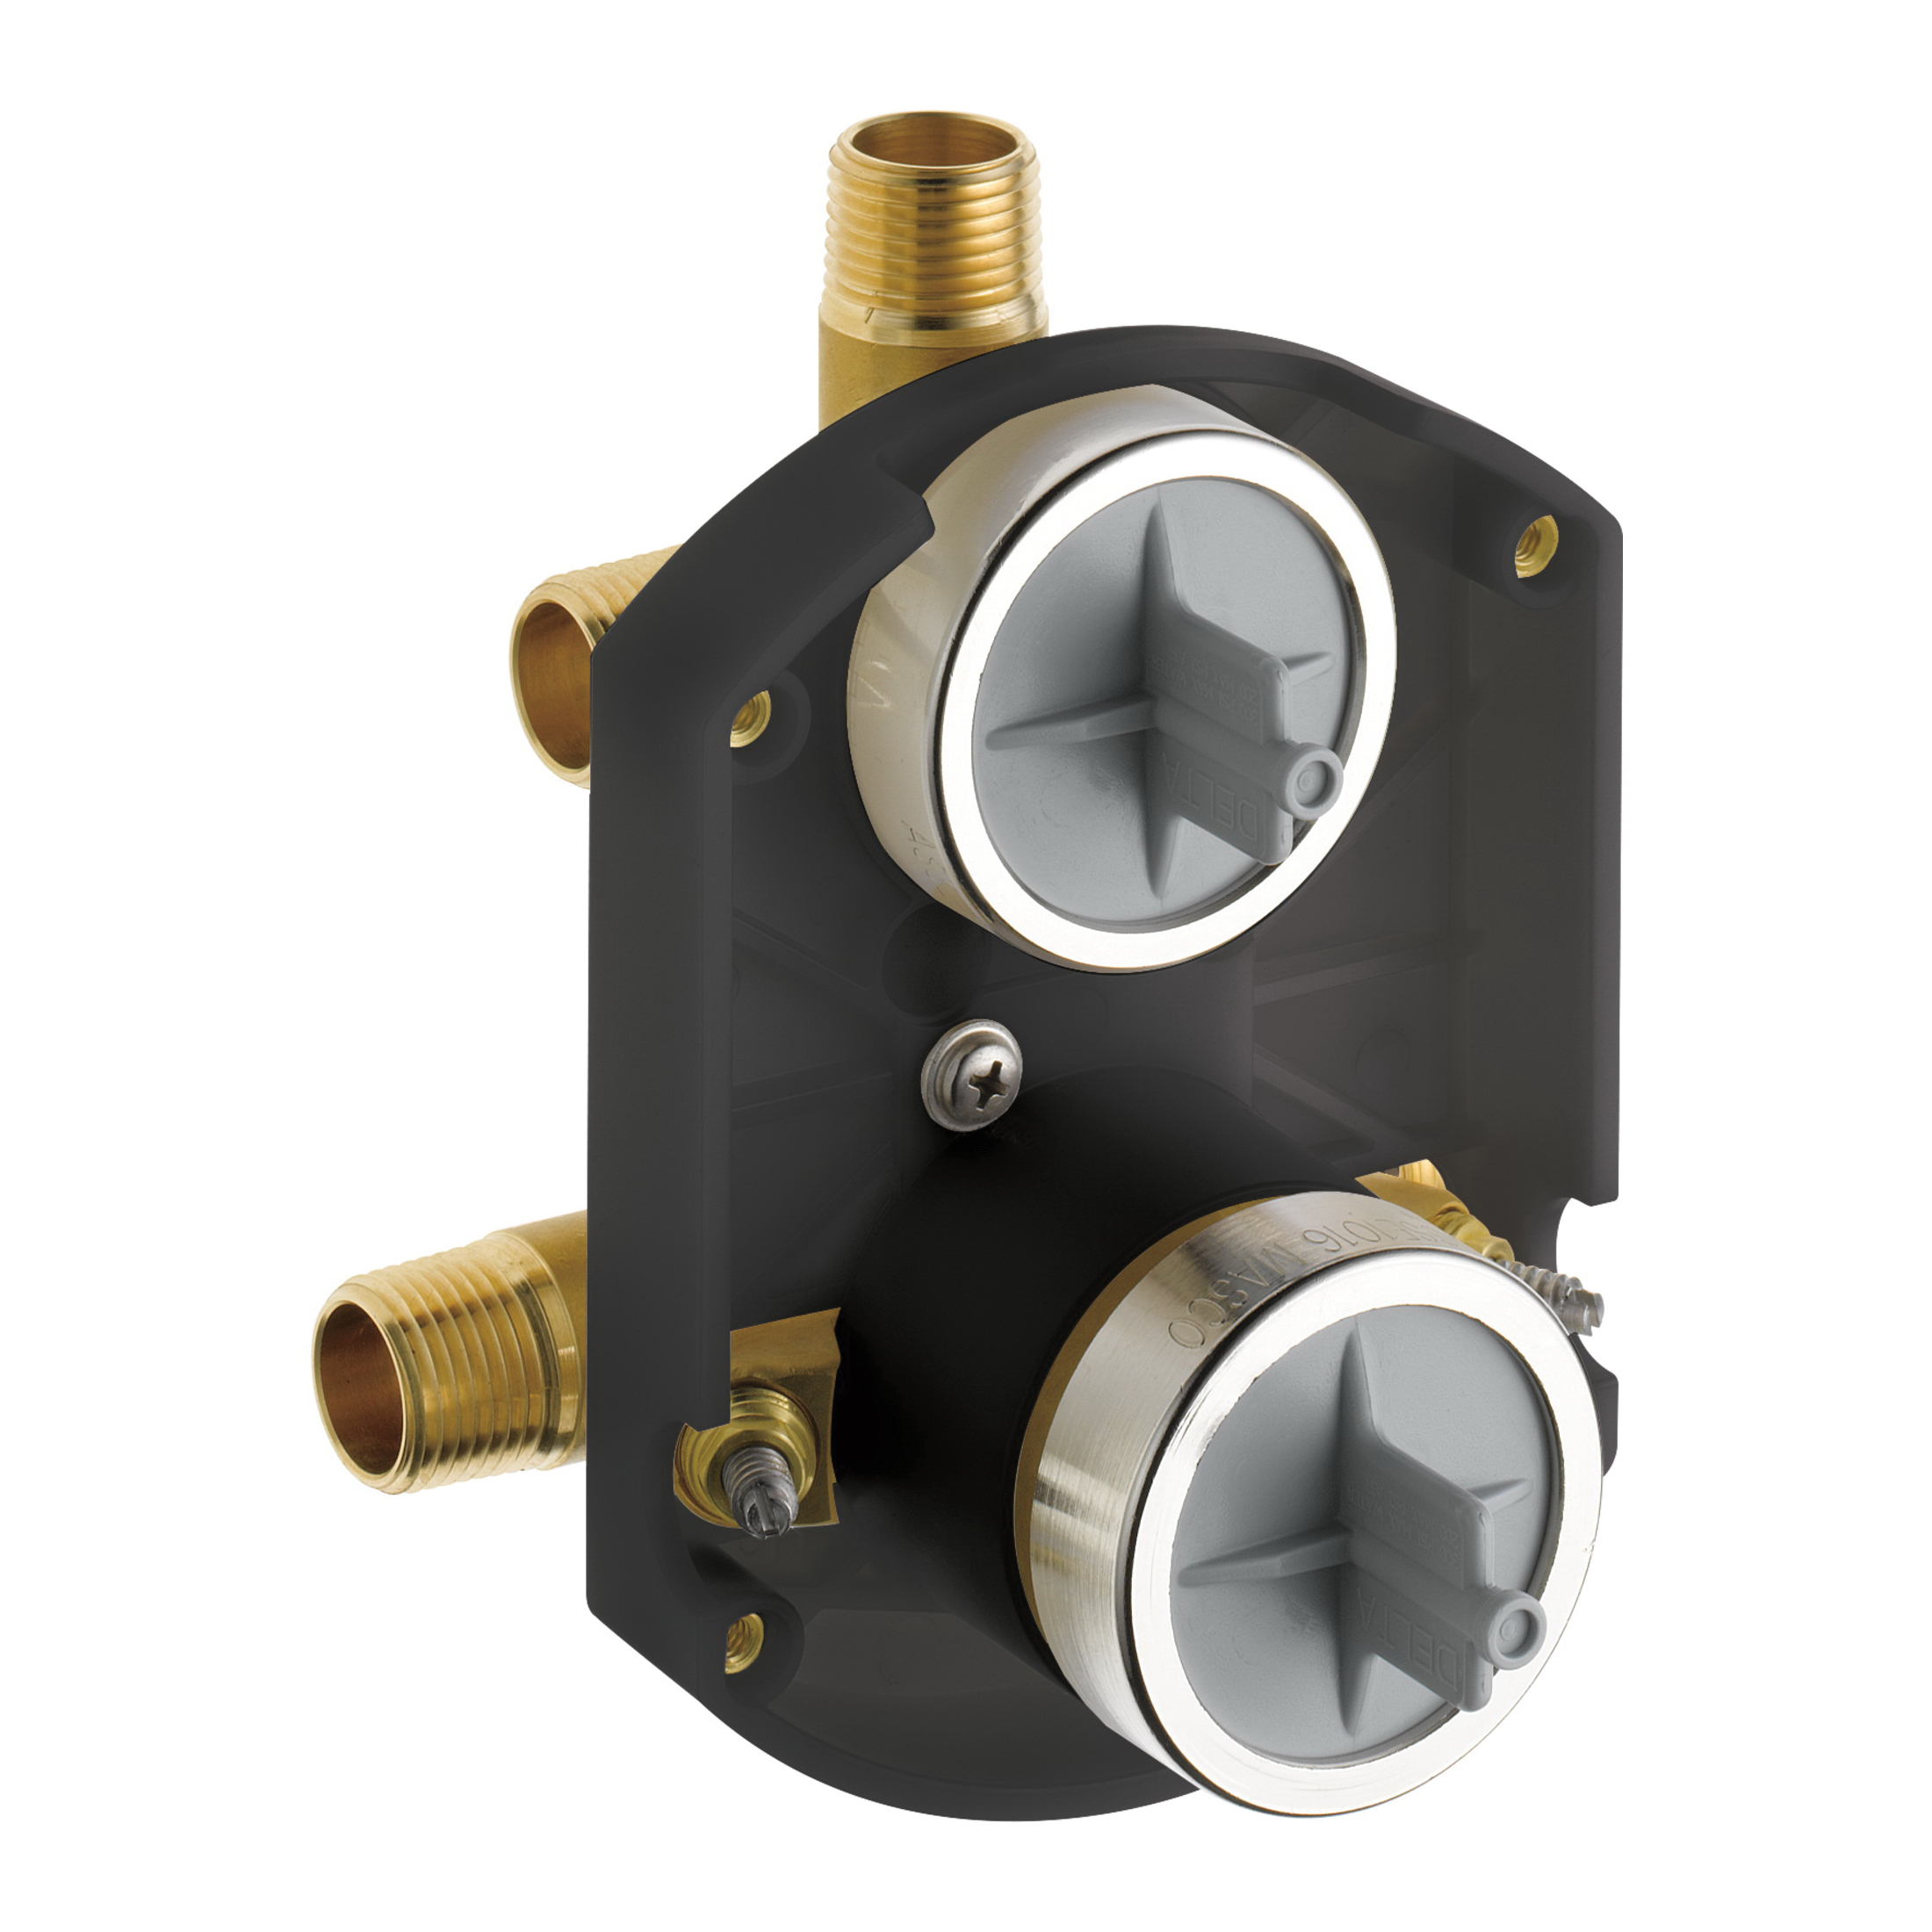 DELTA® R22000-WS MultiChoice® Universal Diverter Rough-In Valve, Forged Brass Body, Domestic